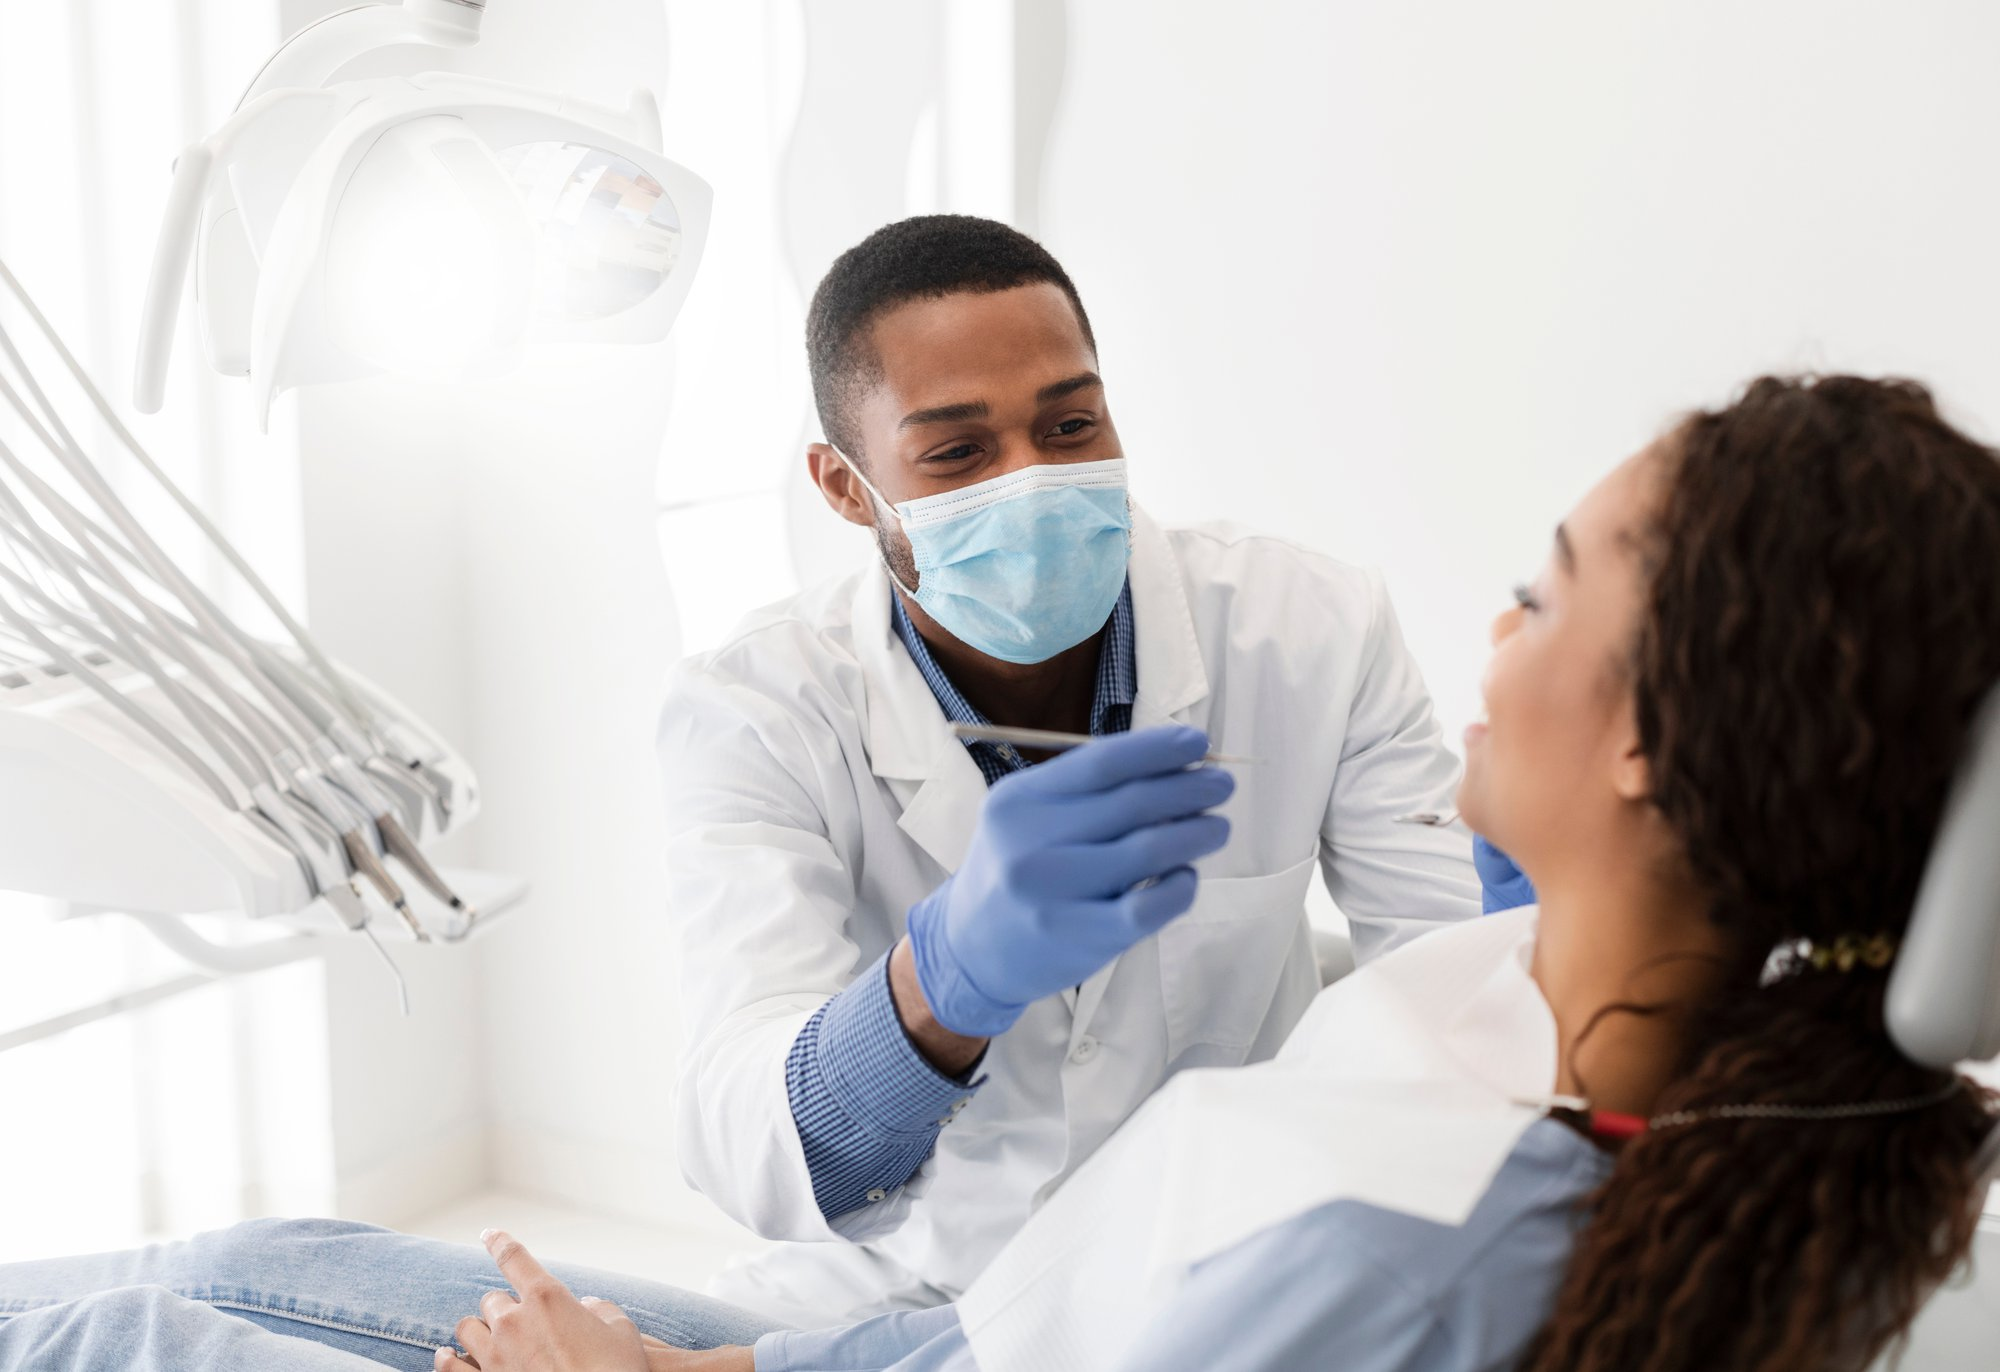 Are Mini Dental Implants Worth the Practice Investment?